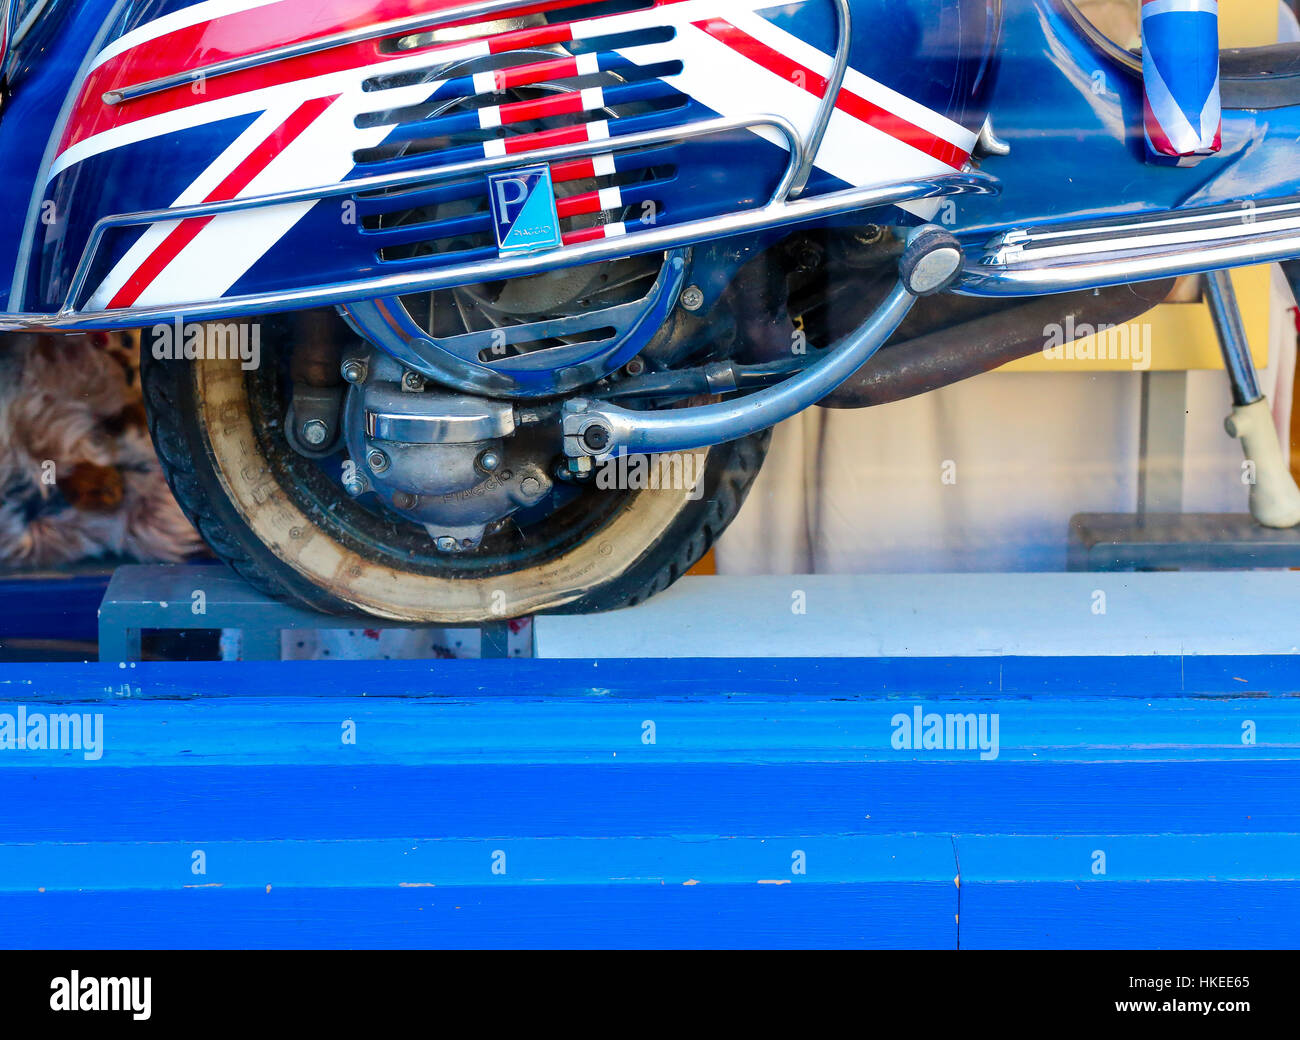 Roller Spiegel Nach Unten Flag Scooter Stockfotos And Flag Scooter Bilder Alamy